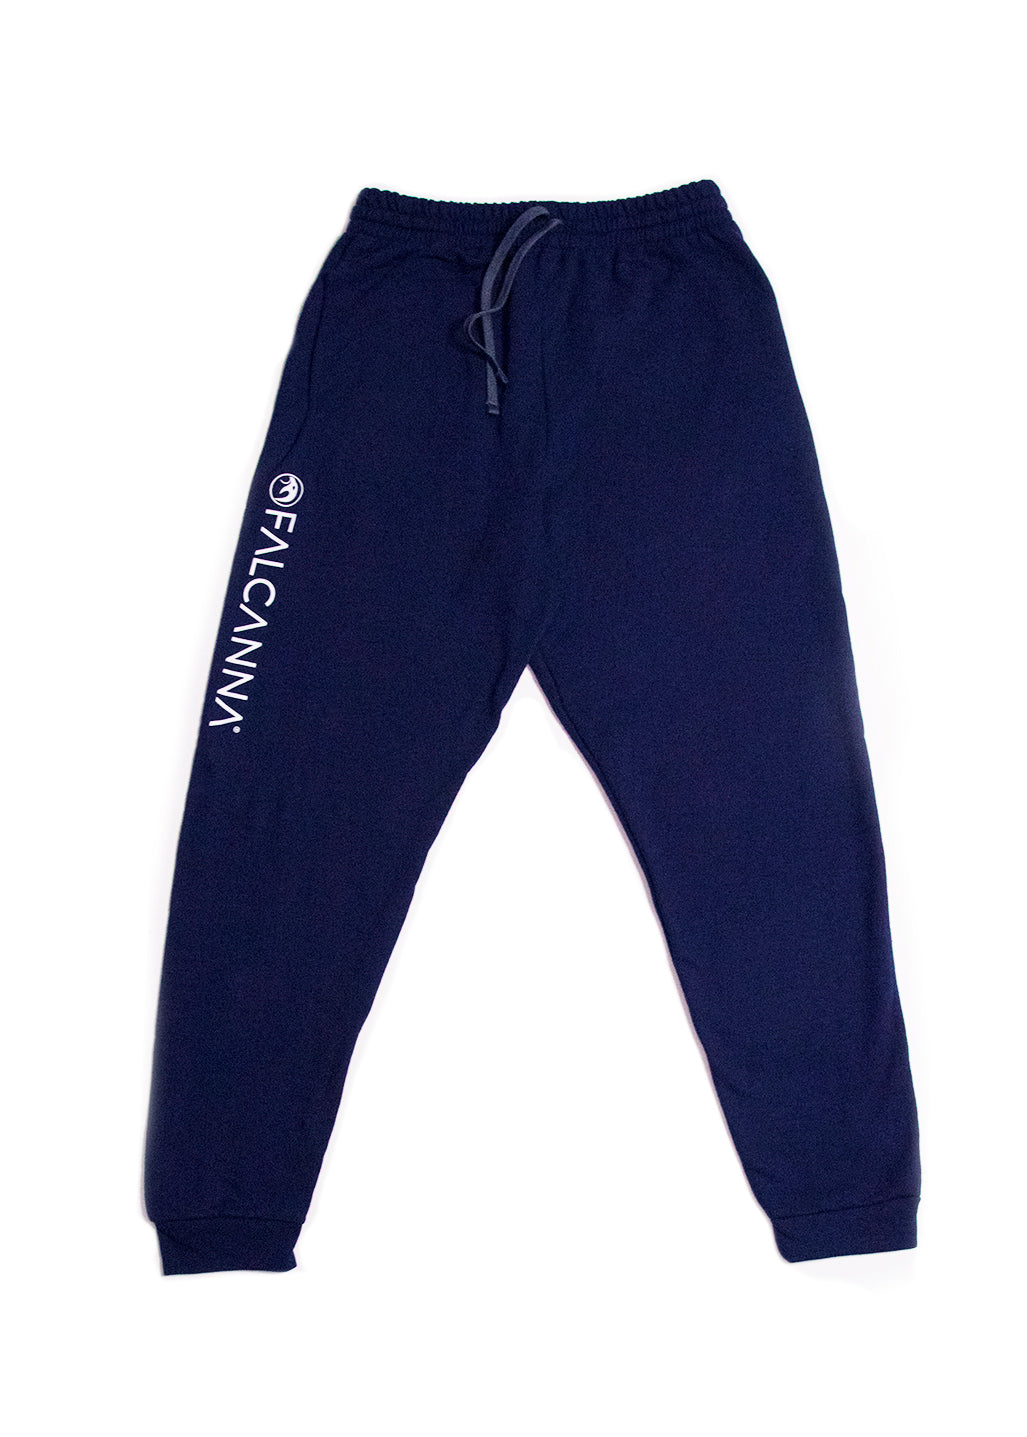 Falcanna Sweatpants